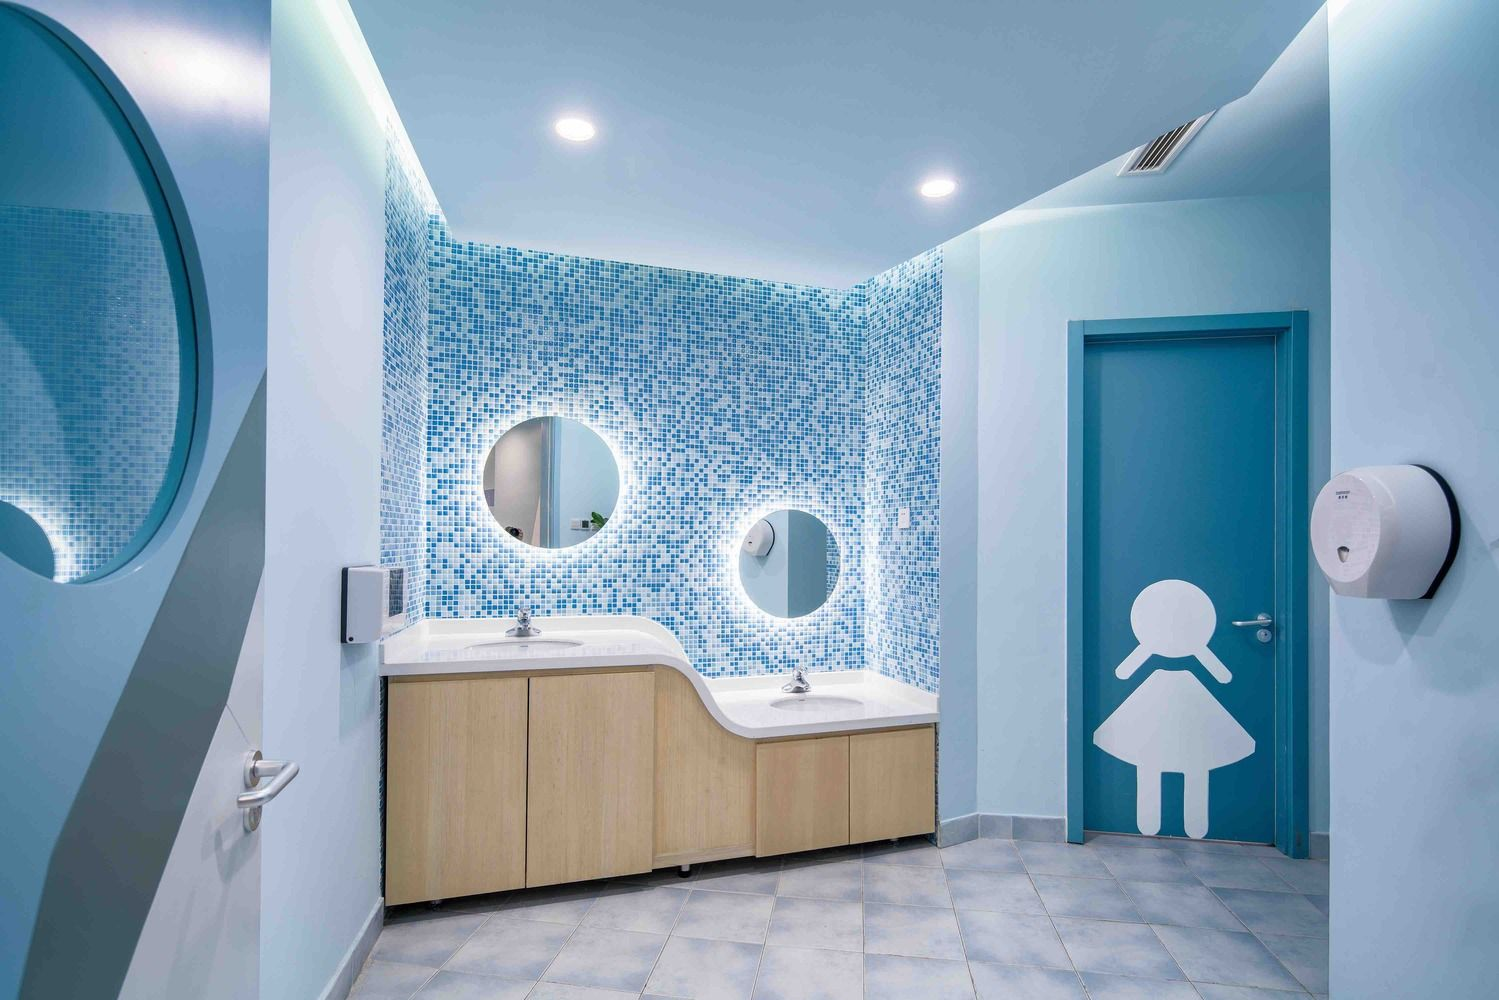 Bathroom Design Centers Alluring Gallery Of Vanke Early Learning Center  Dot Architects  2 Design Inspiration